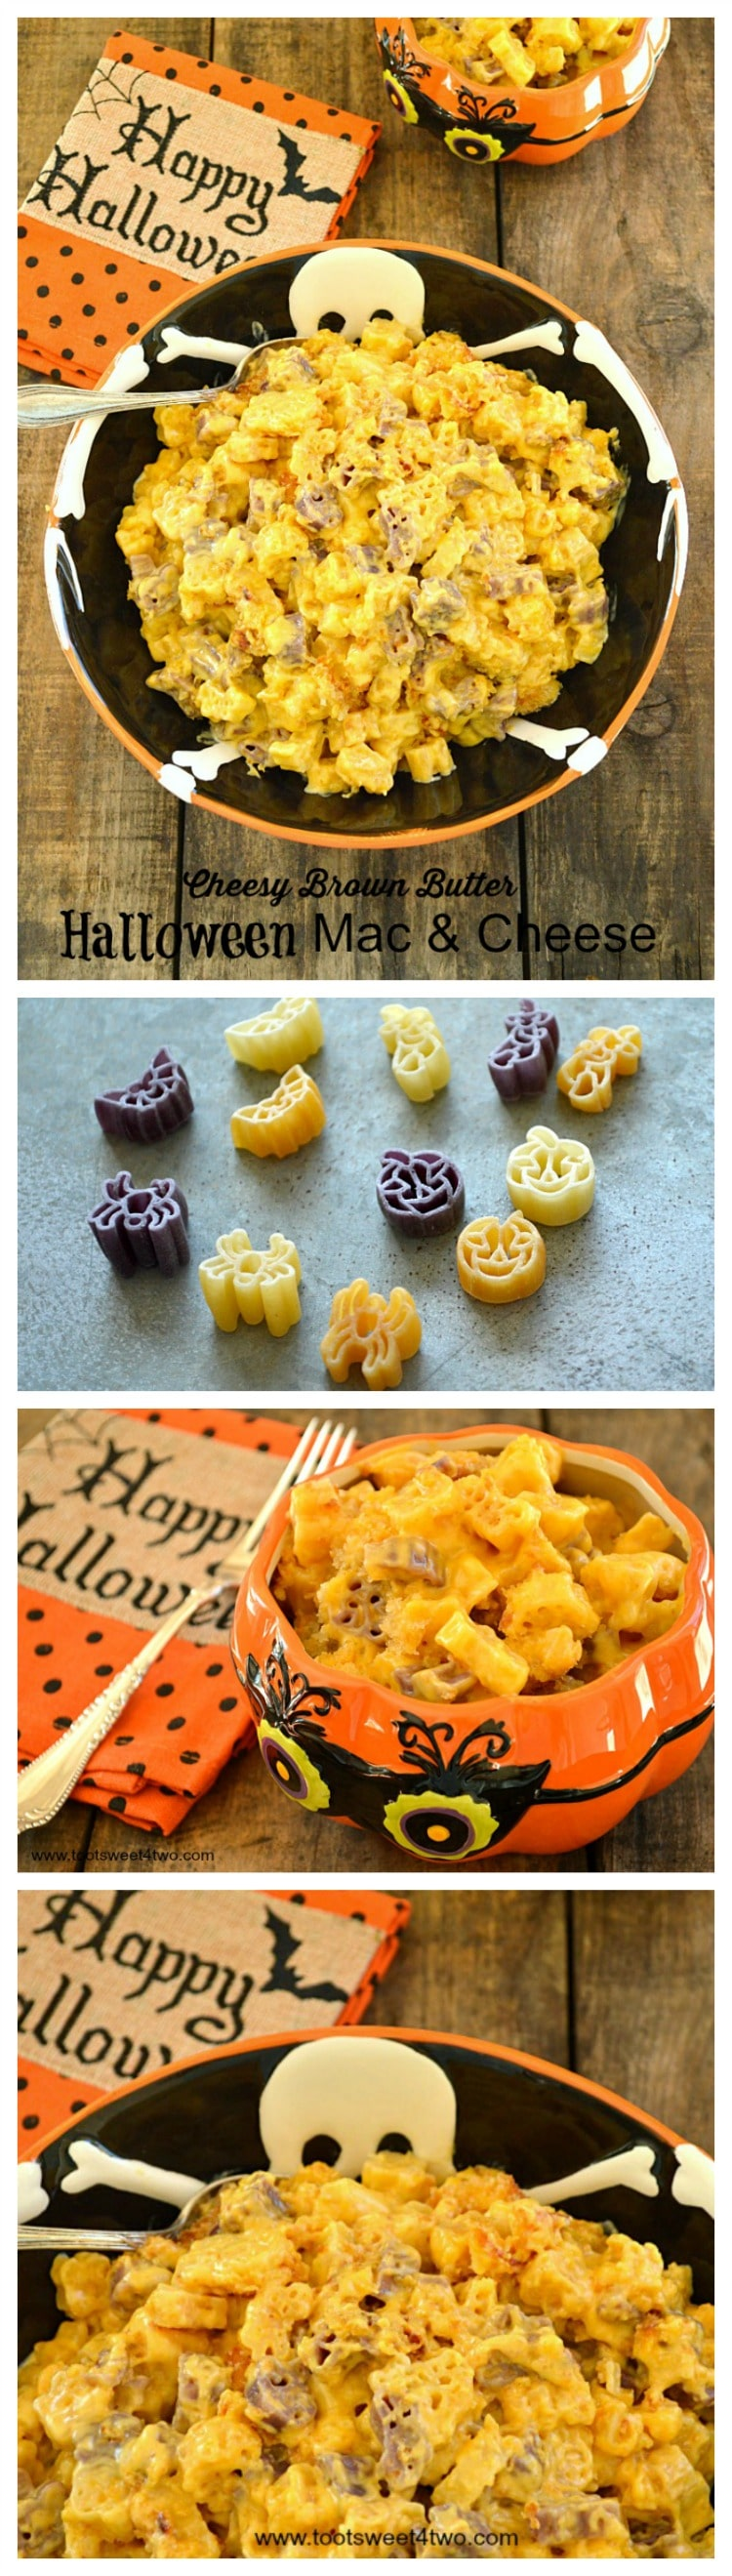 Cheesy Brown Butter Halloween Mac & Cheese Pinterest collage